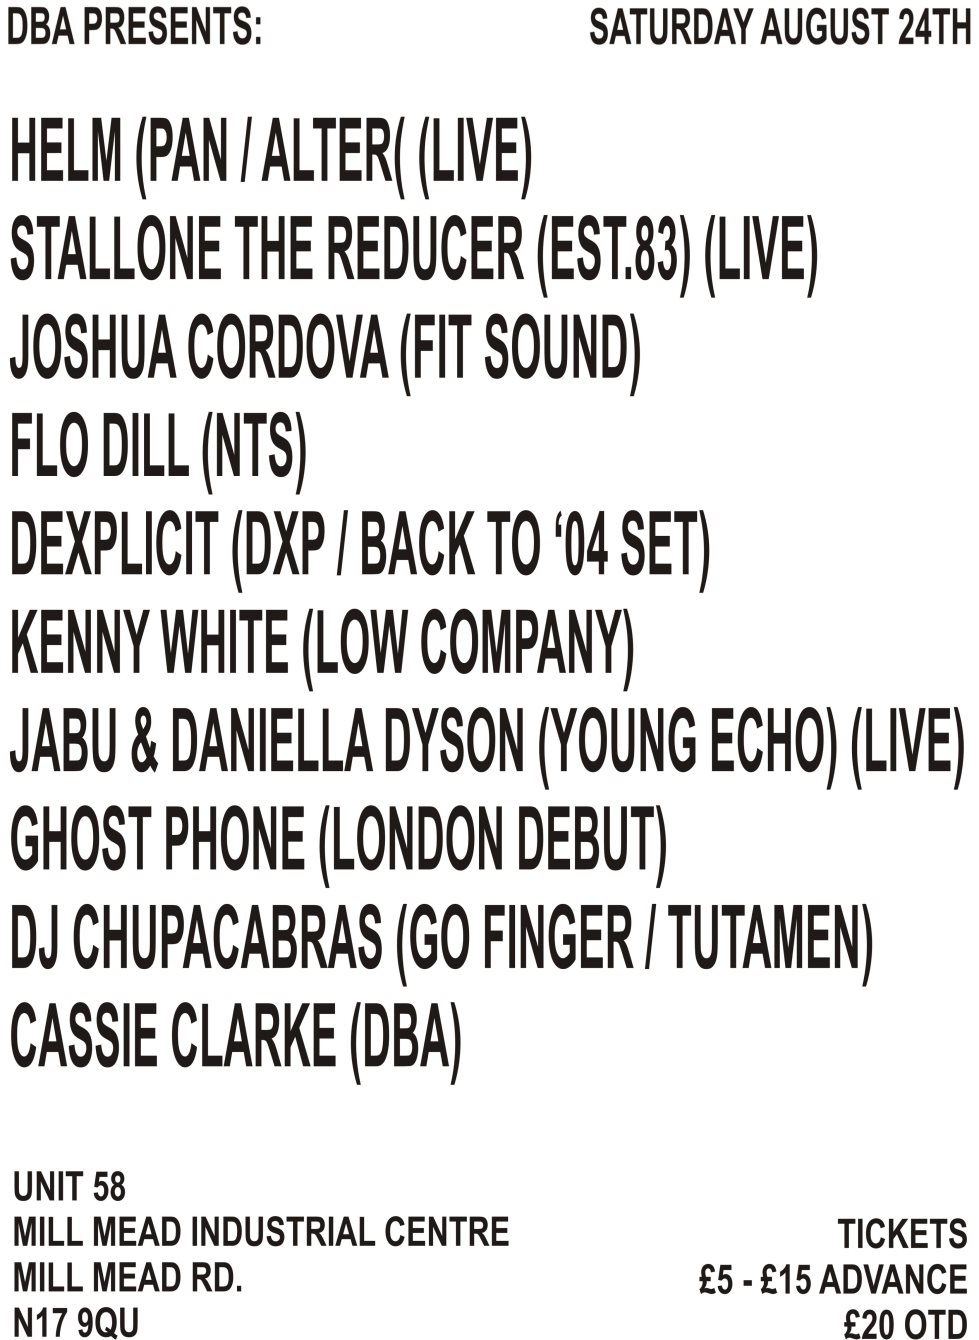 DBA presents... Helm (Live), Stallone The Reducer (Live), Flo Dill and Joshua Cordova - Flyer front